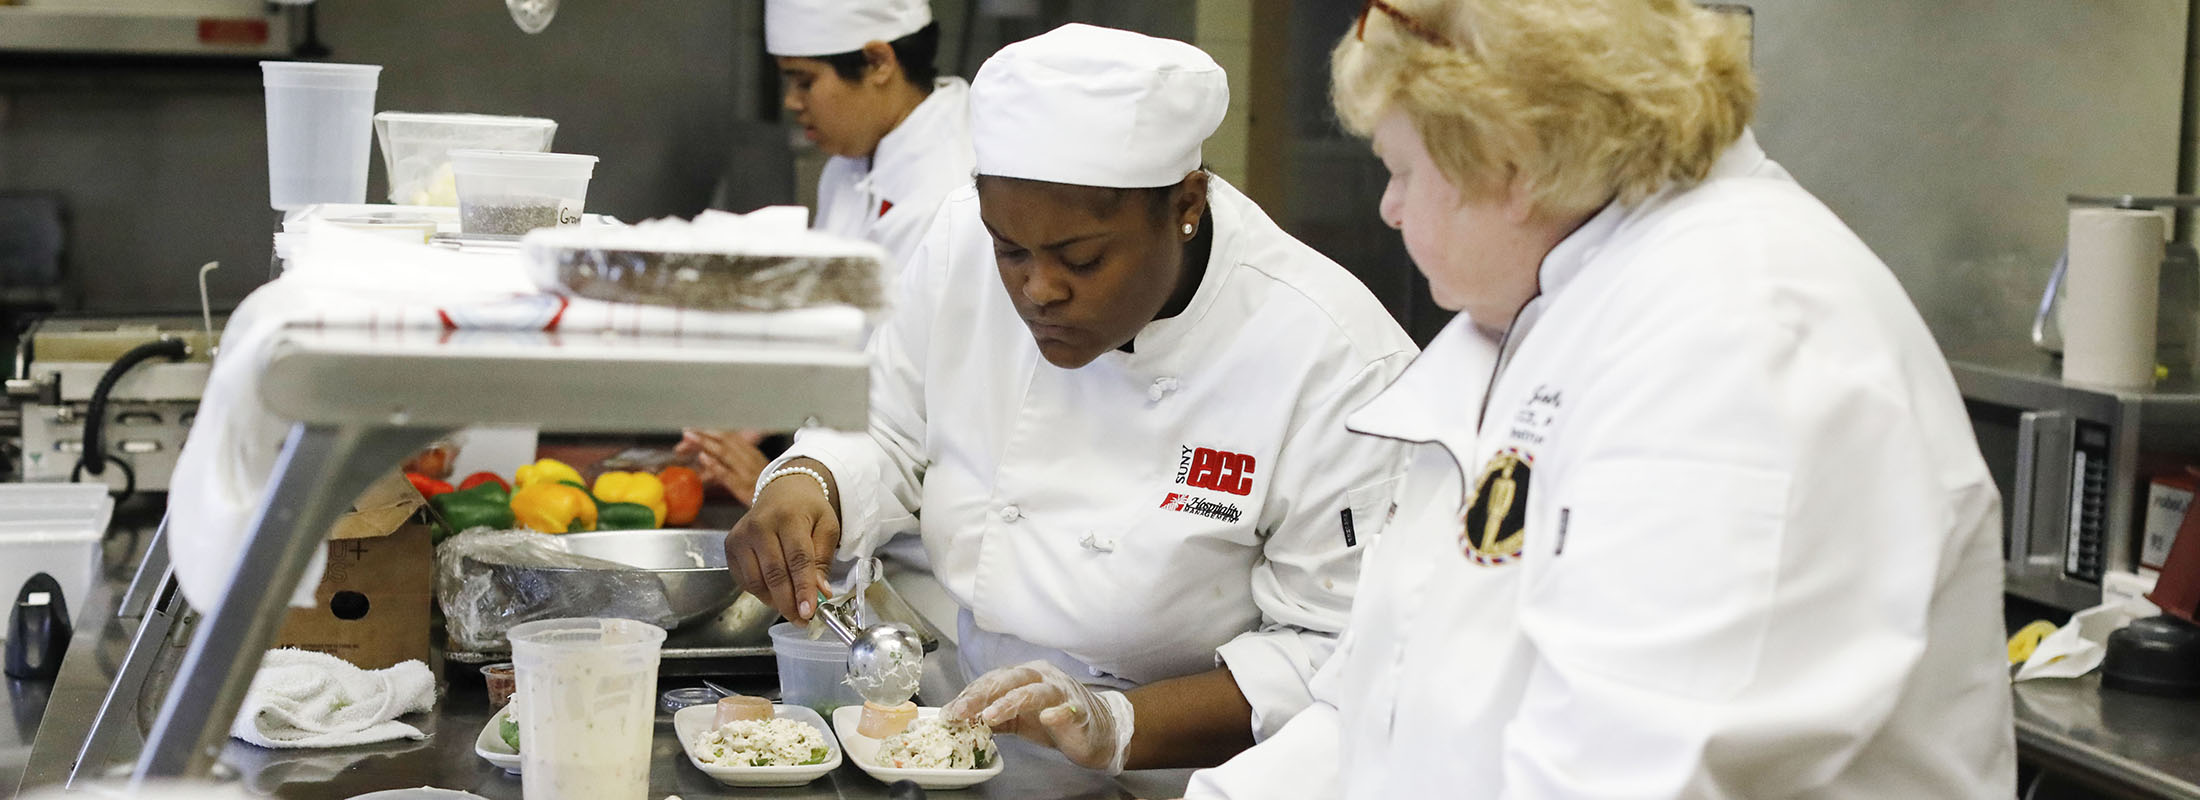 Erie Community College culinary student Alicia Barker-Smith creates a dish as associate professor Dorothy Johnston watches in the kitchen at the E.M. Statler Dining Room in ECC City Campus. (Derek Gee/Buffalo News)